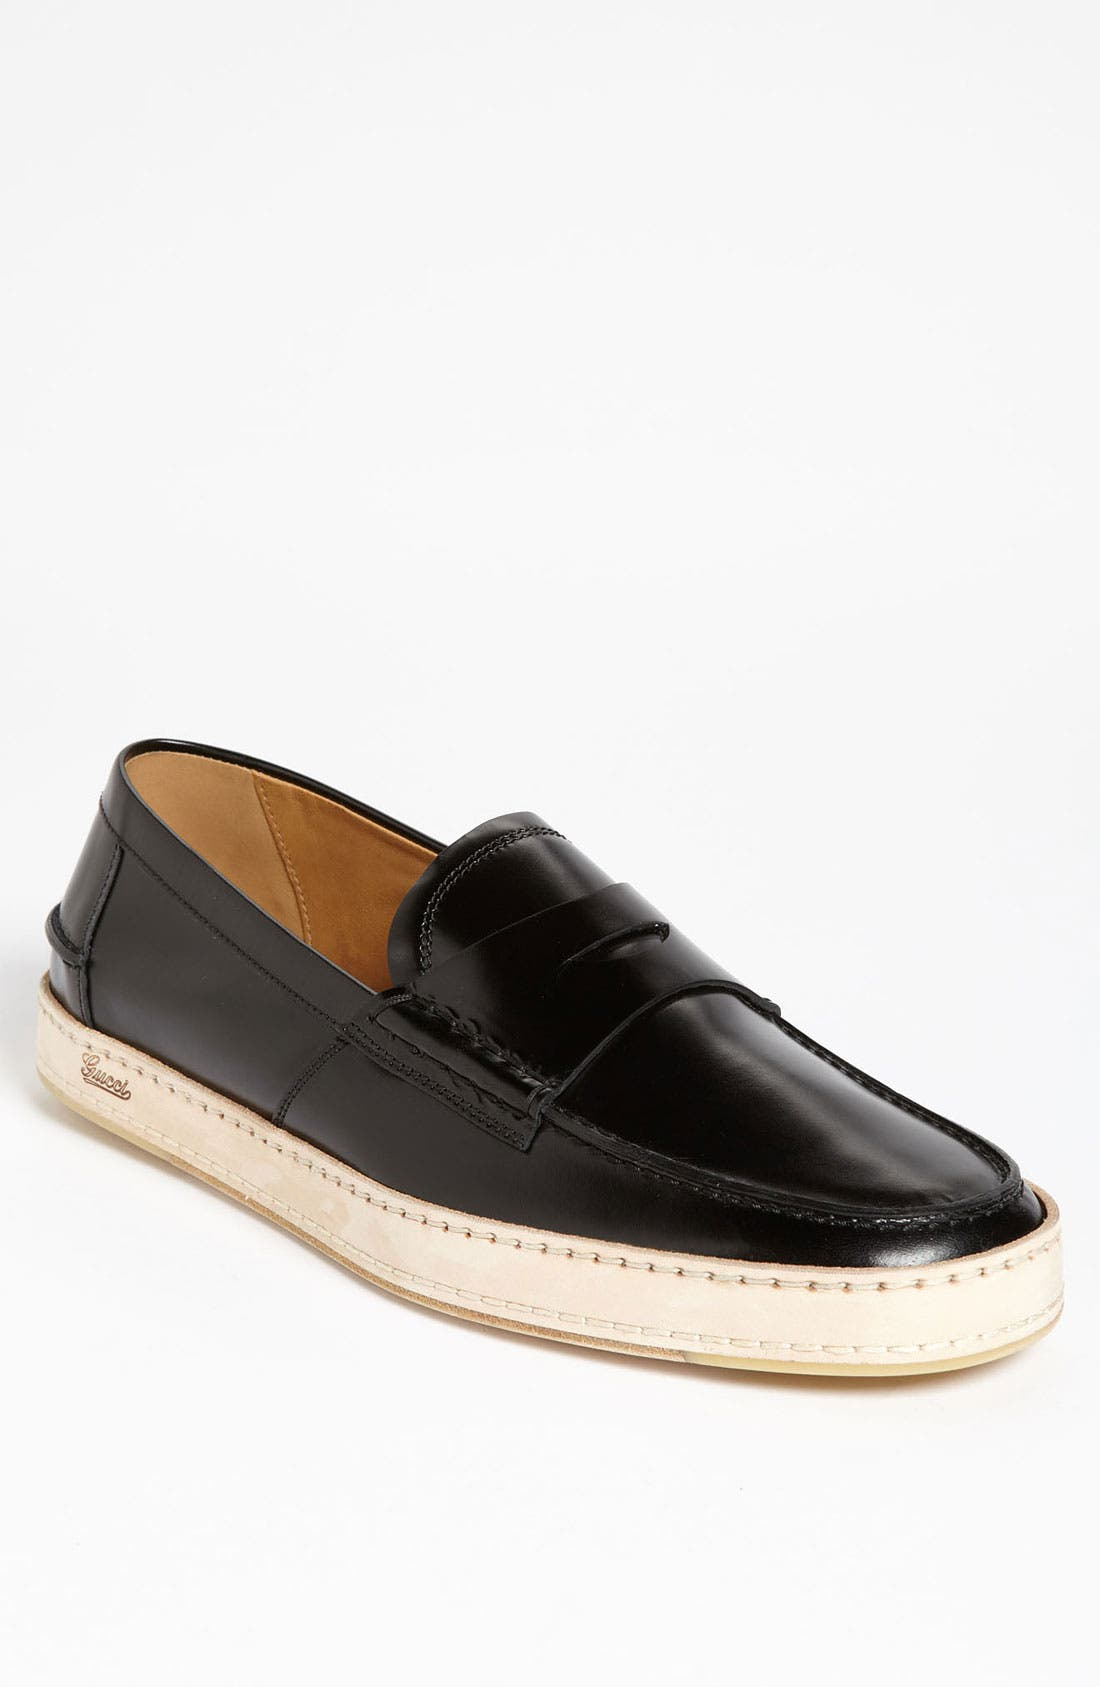 Main Image - Gucci 'Gand' Penny Loafer